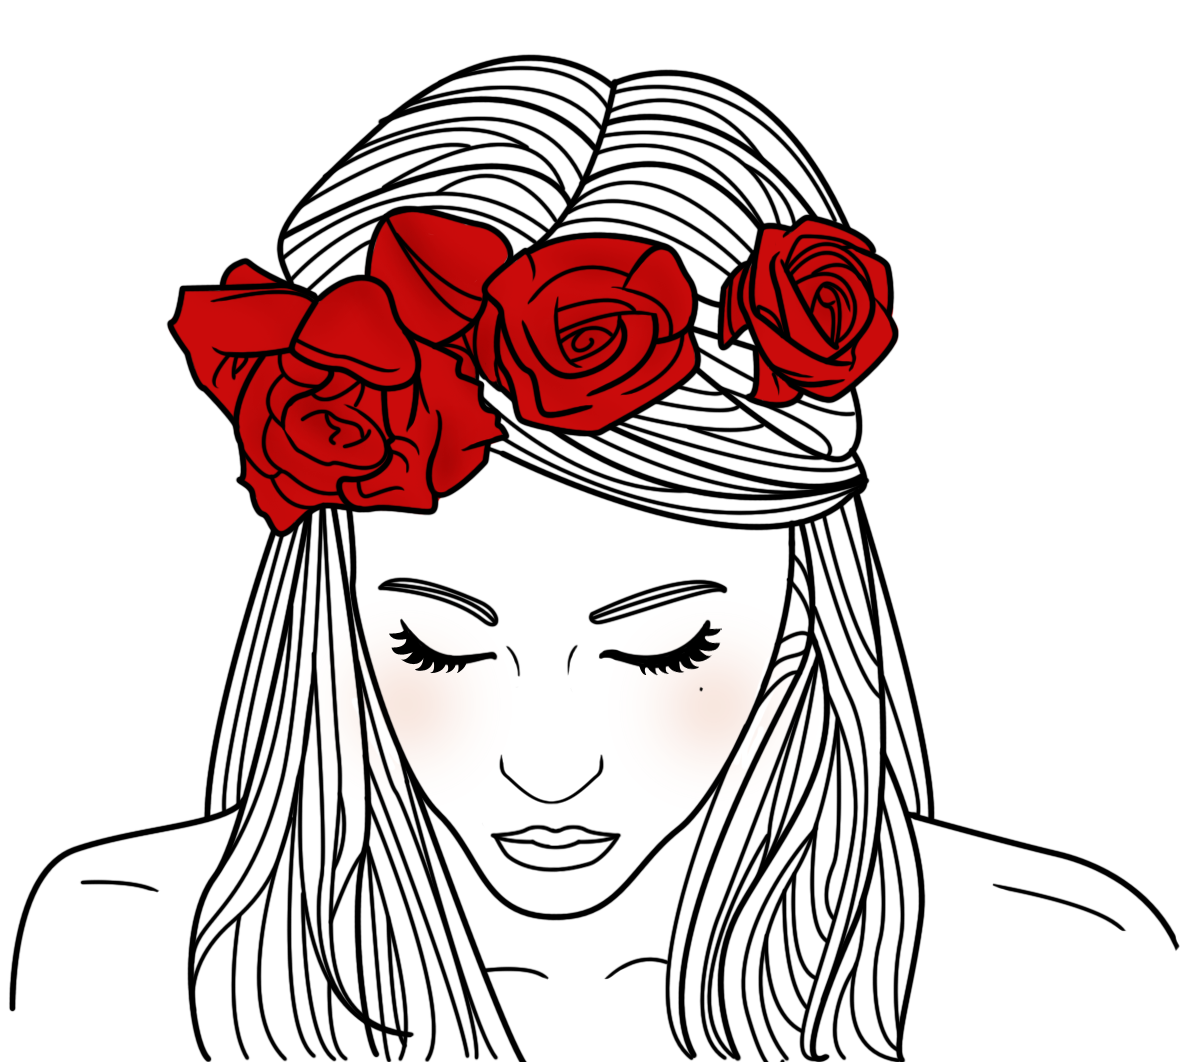 Line Art We Heart It : Sara herranz me alegra la semana el tornillo que te falta